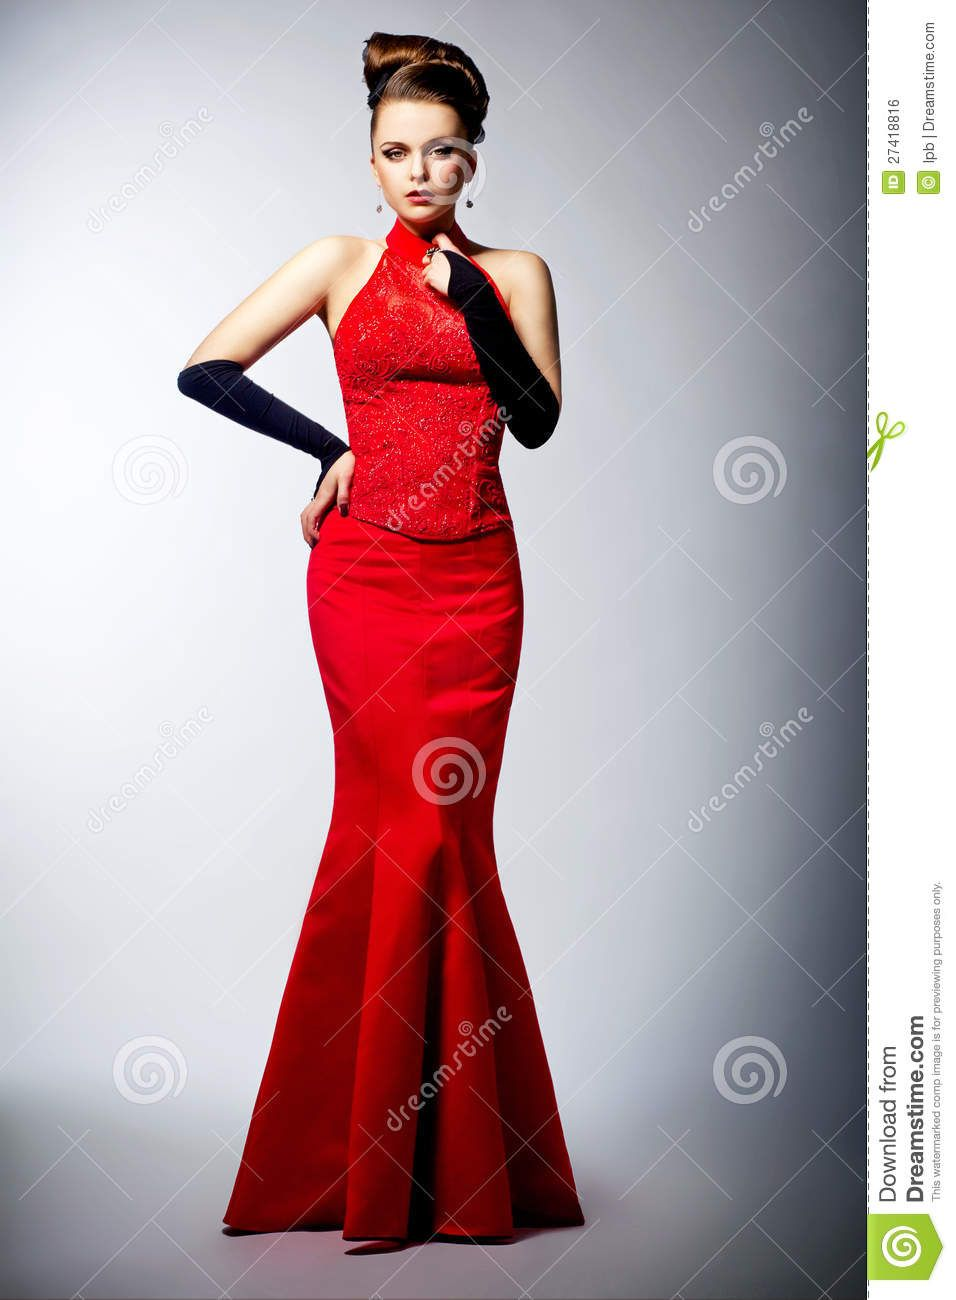 Woman In Black Gloves And Wedding Red Dress Posing Dresses Red Dress Red Wedding [ 1300 x 956 Pixel ]